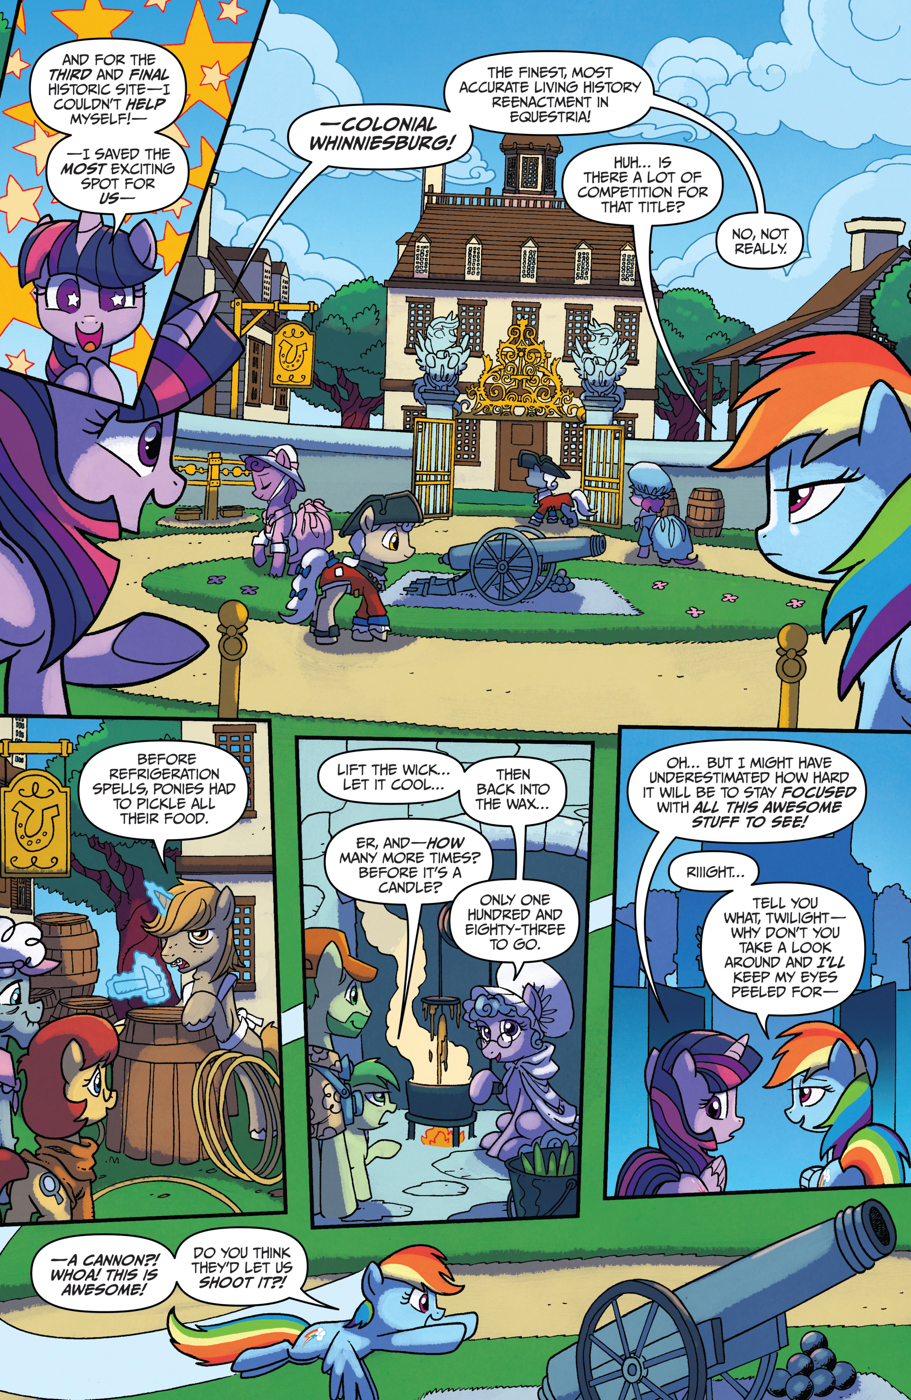 Read online My Little Pony: Friendship is Magic comic -  Issue #52 - 14